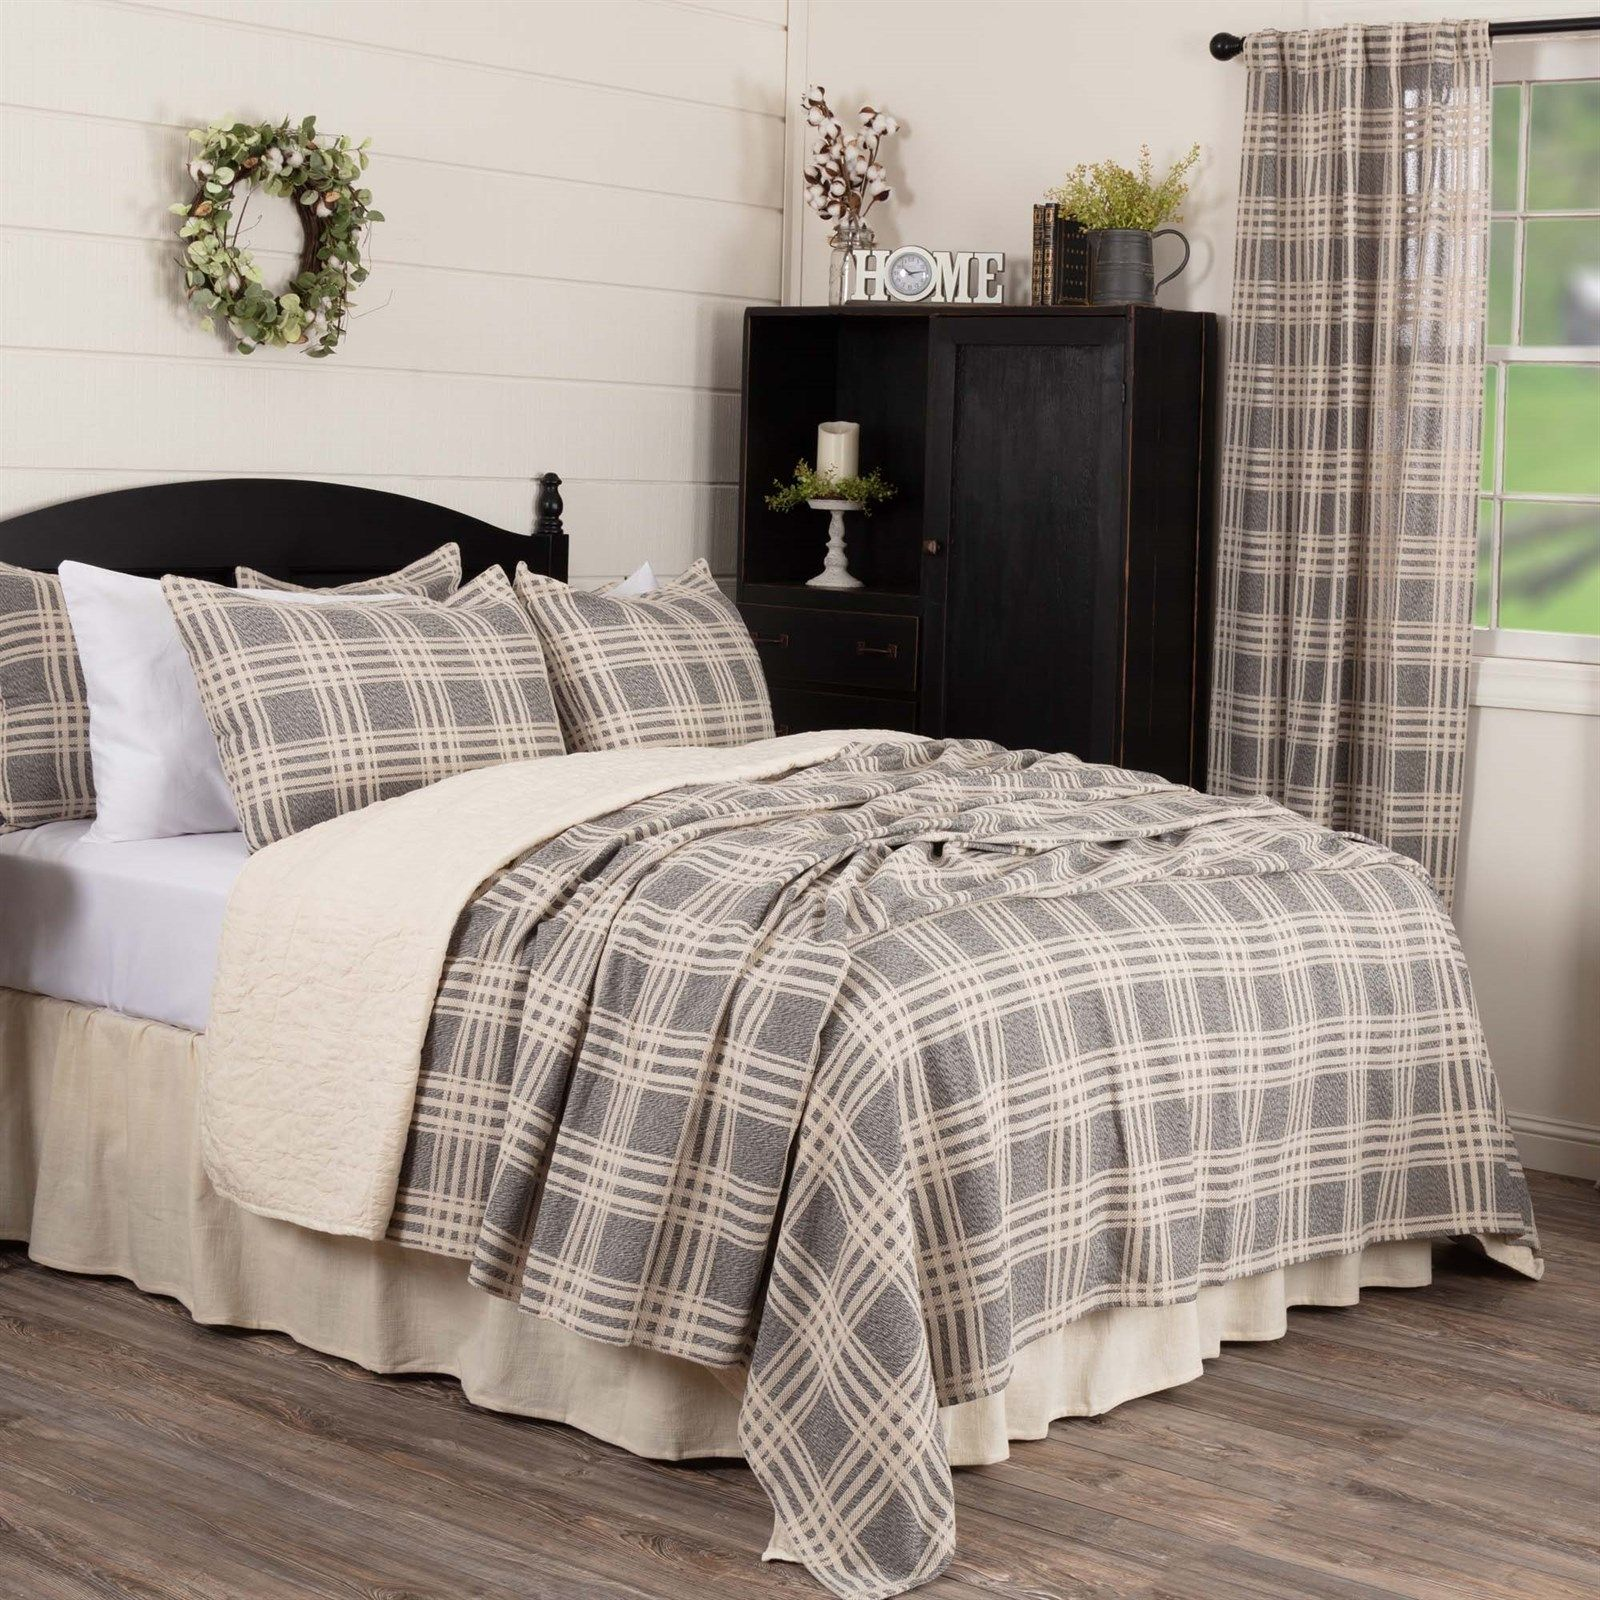 Farmhouse Bed Coverlets   in 2020   Coverlet bedding, Home ...